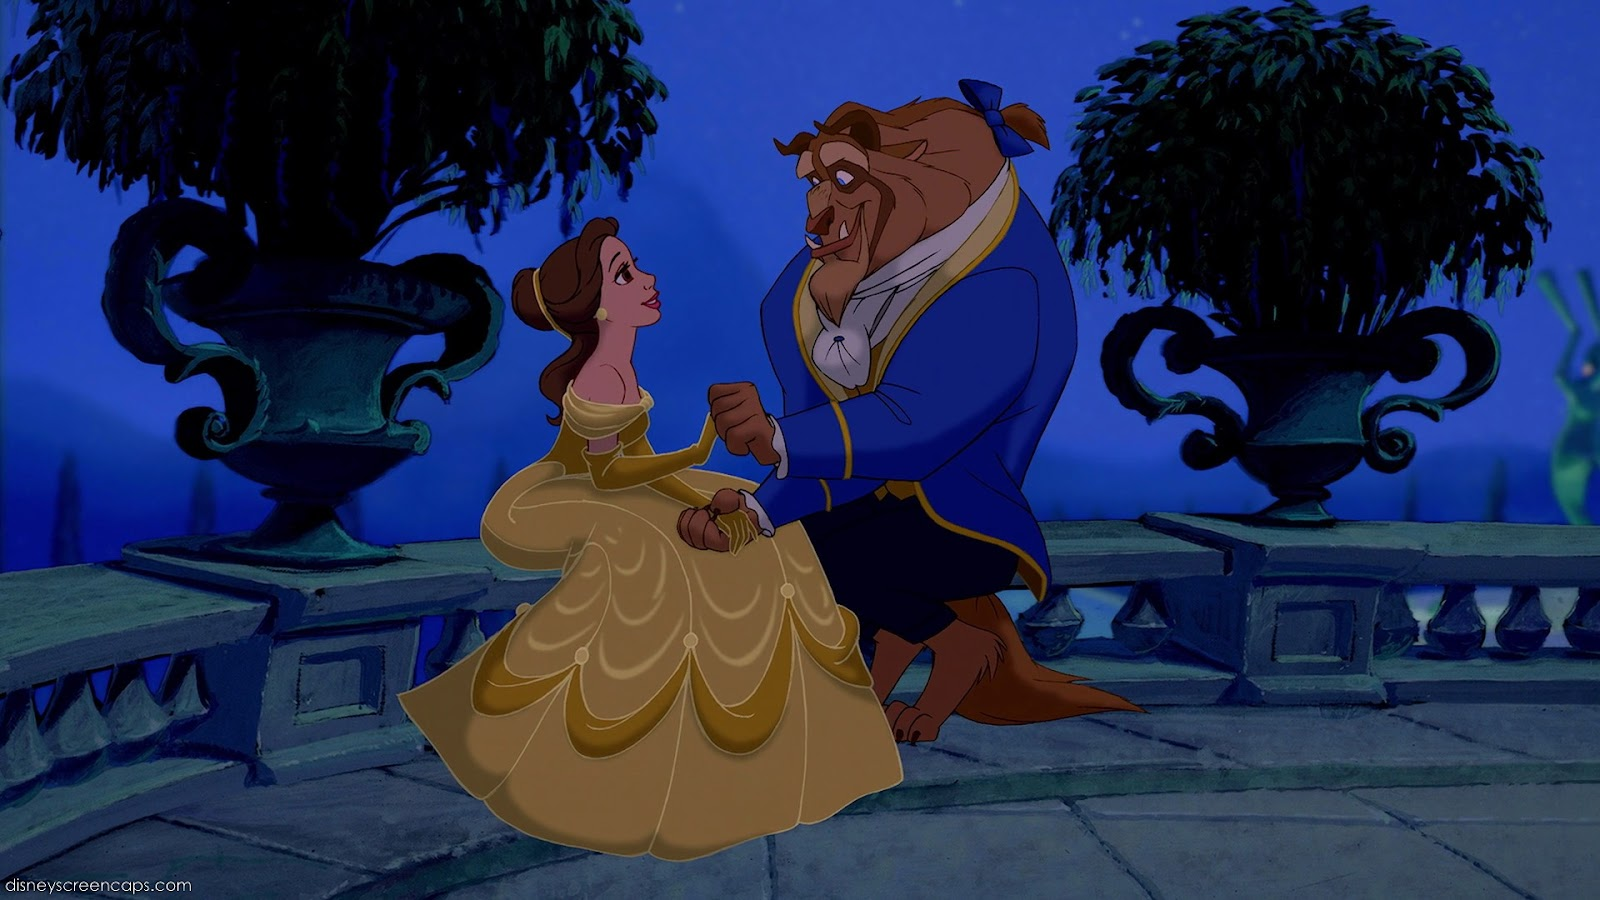 Beauty and the Beast (Disney, 1991) is often thought as a case of Stockholm syndrome. In this scene, Belle and Beast sits down one evening on the porch.